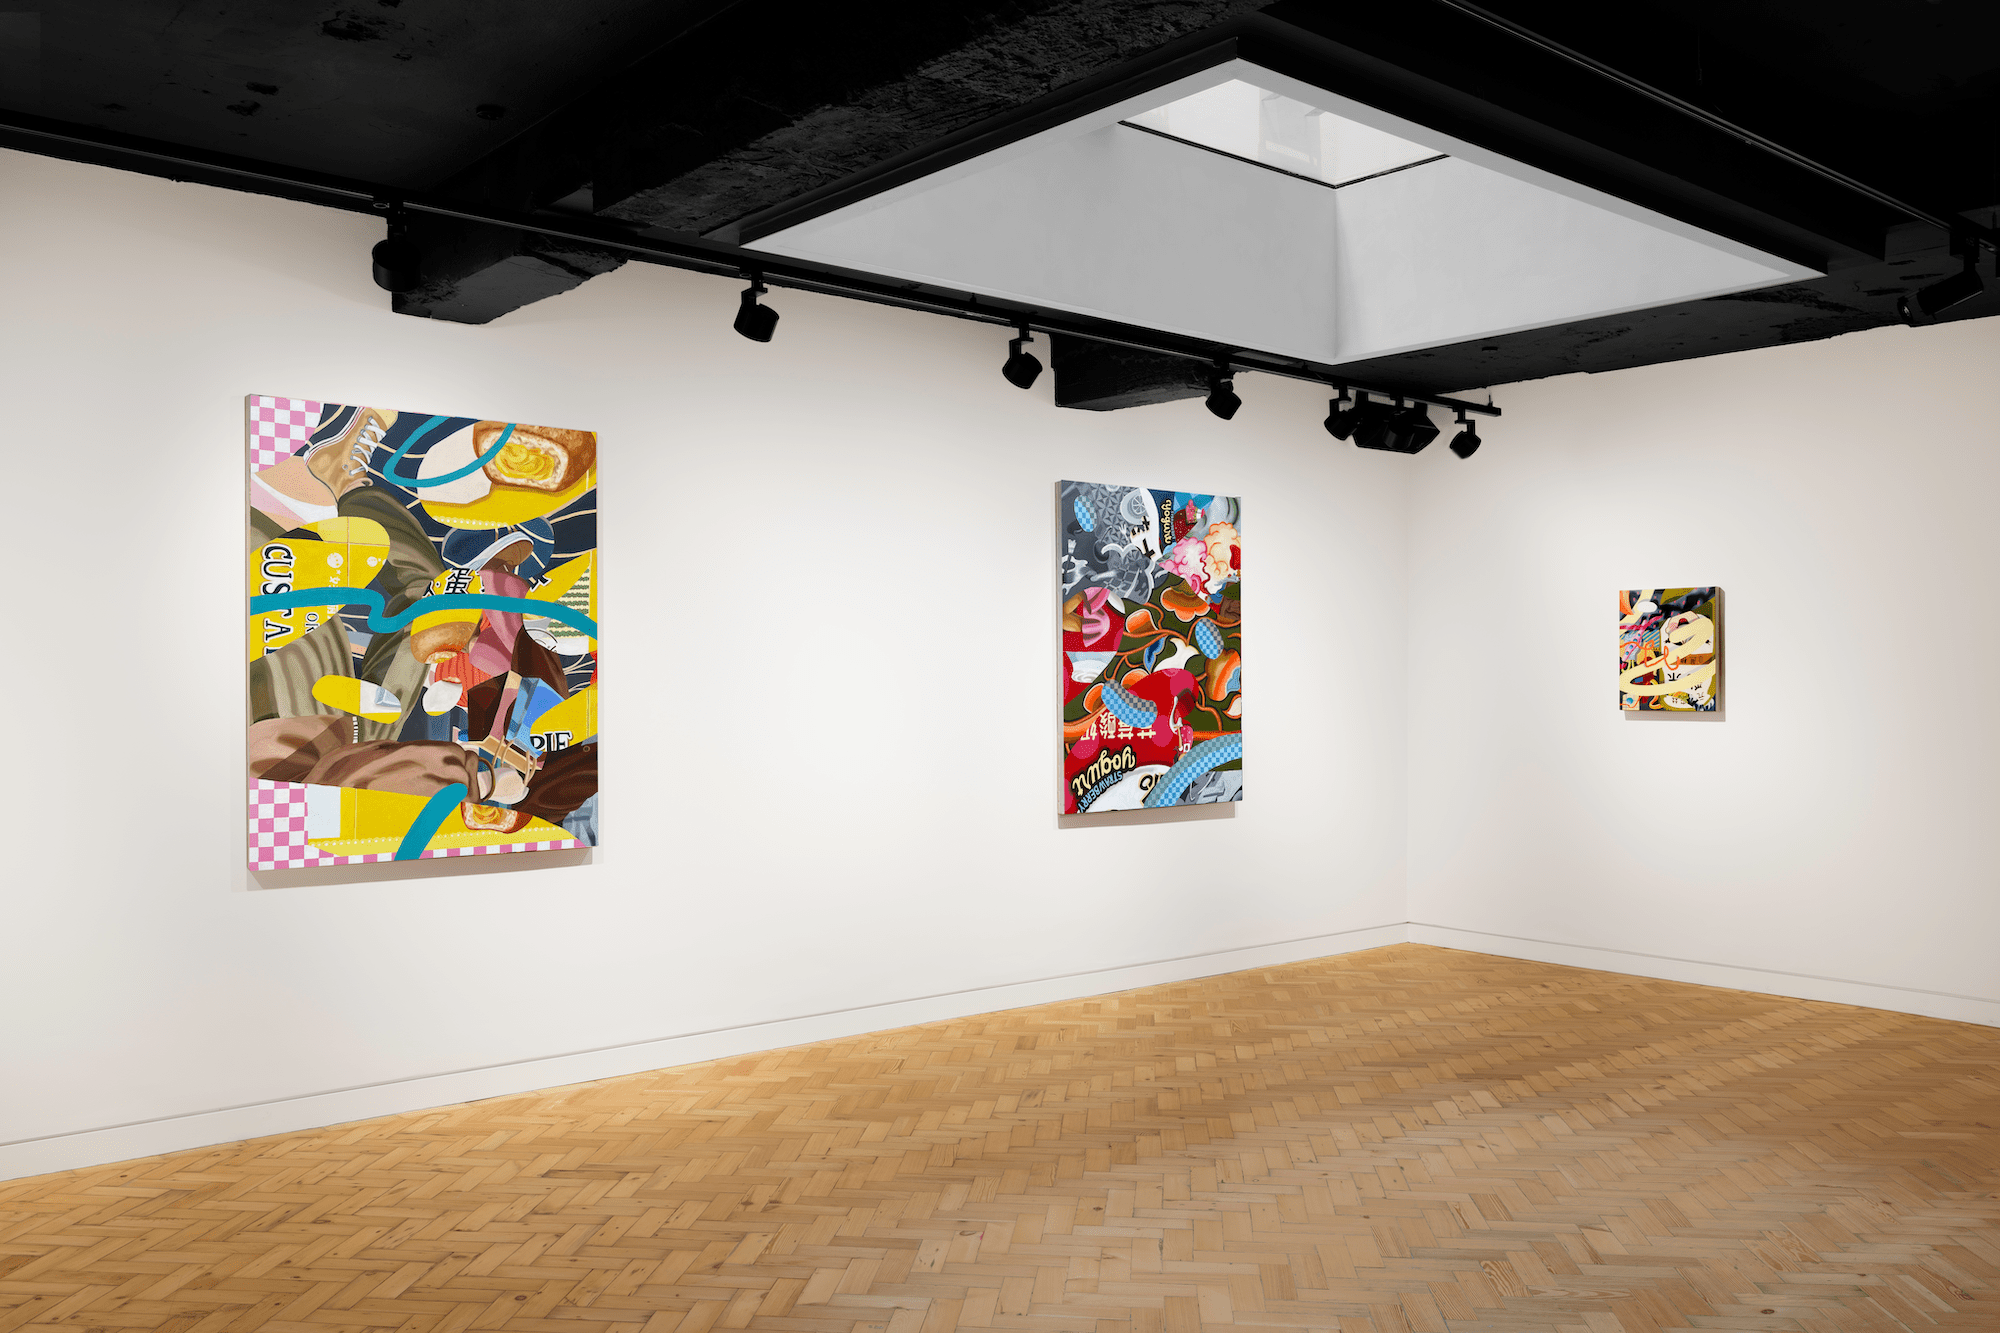 Ziping Wang, James Rosenquist and Consumer Imagery